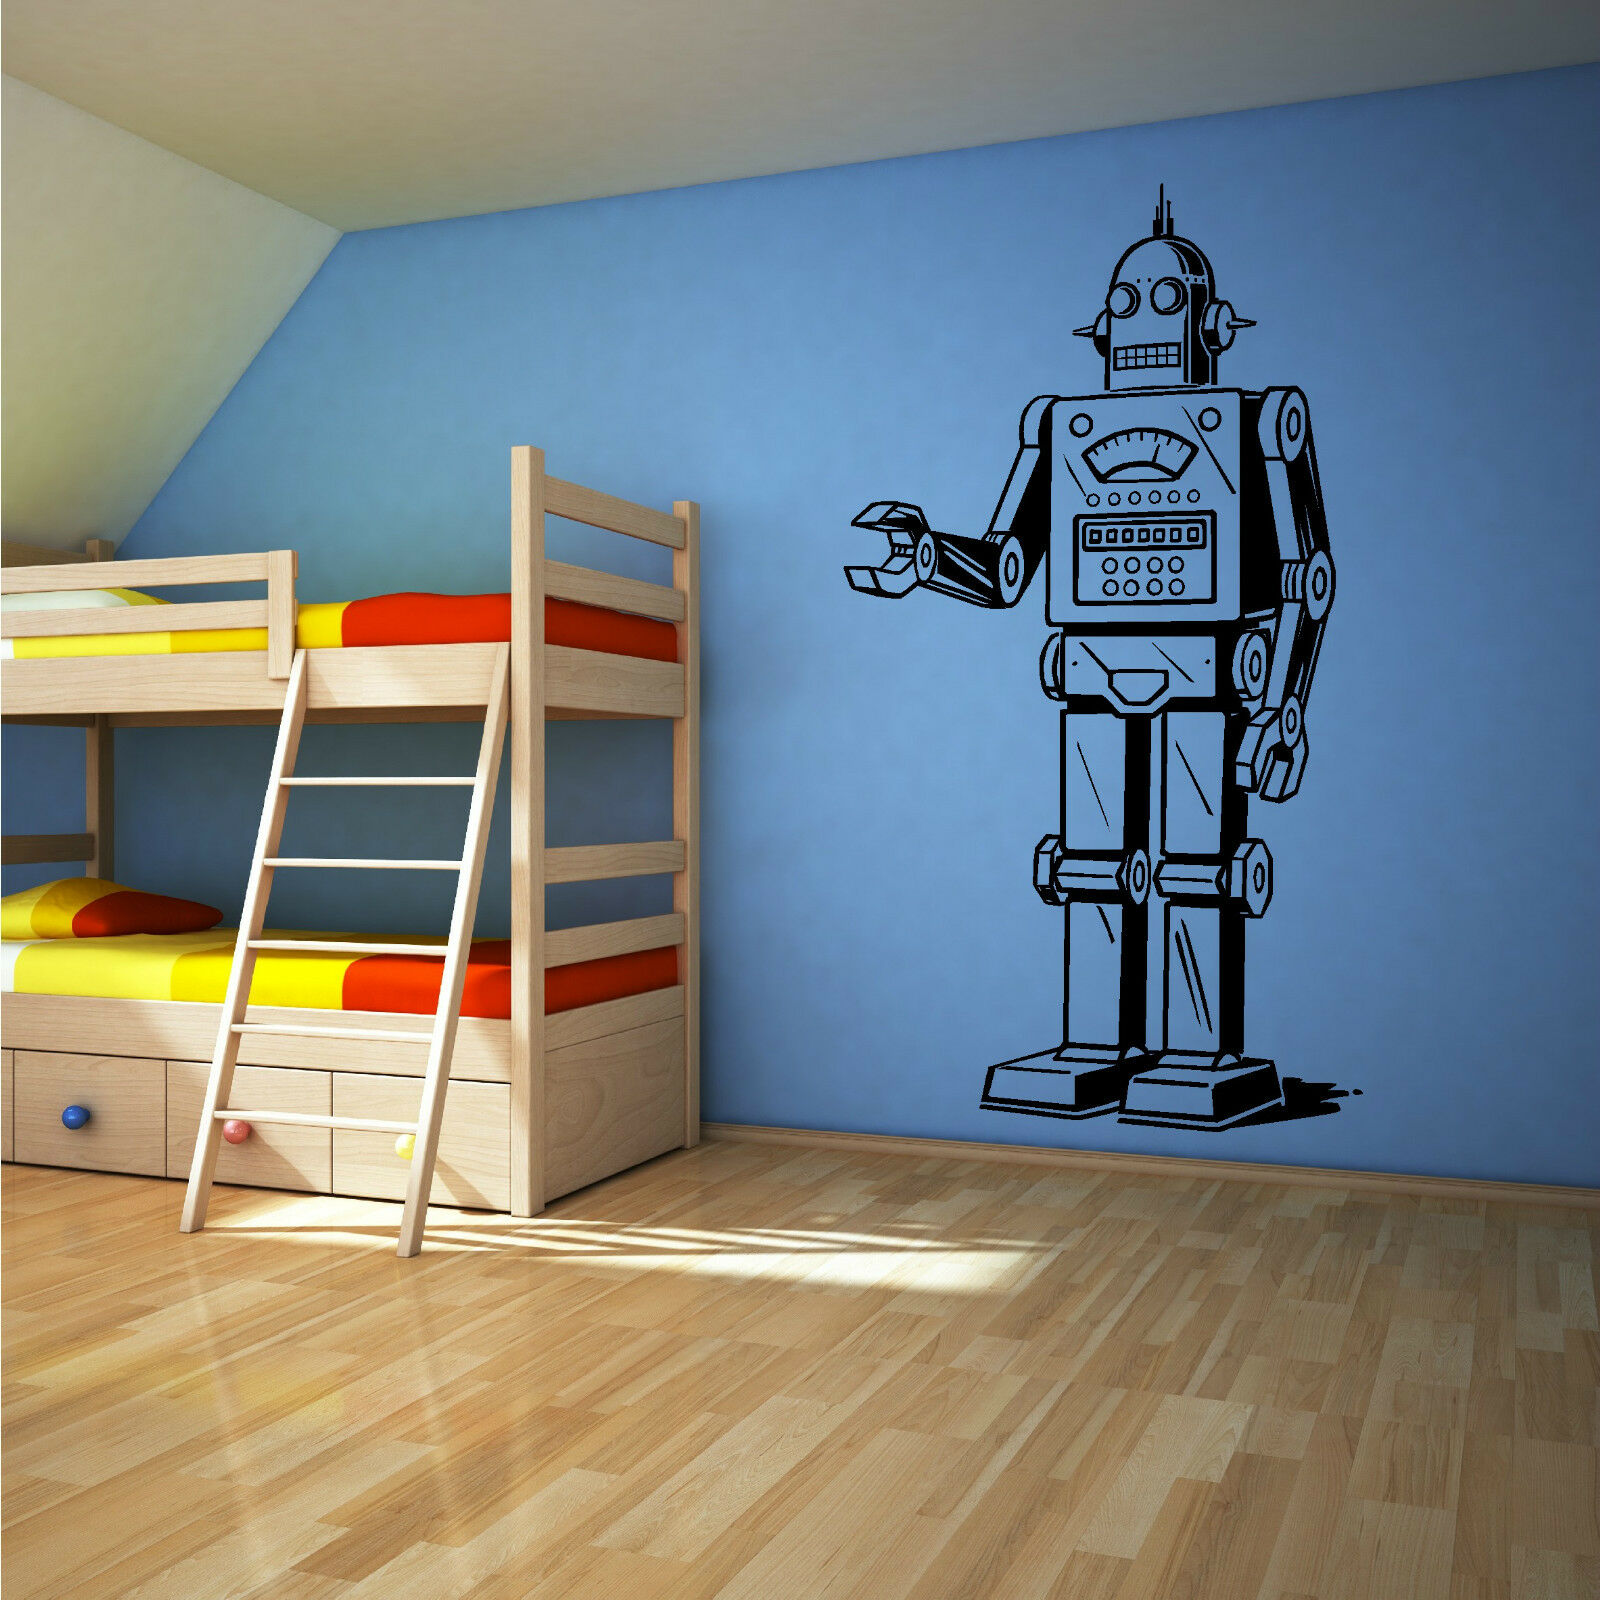 Robot vinyl wall art sticker decal boys bedroom childrens Boys wall decor